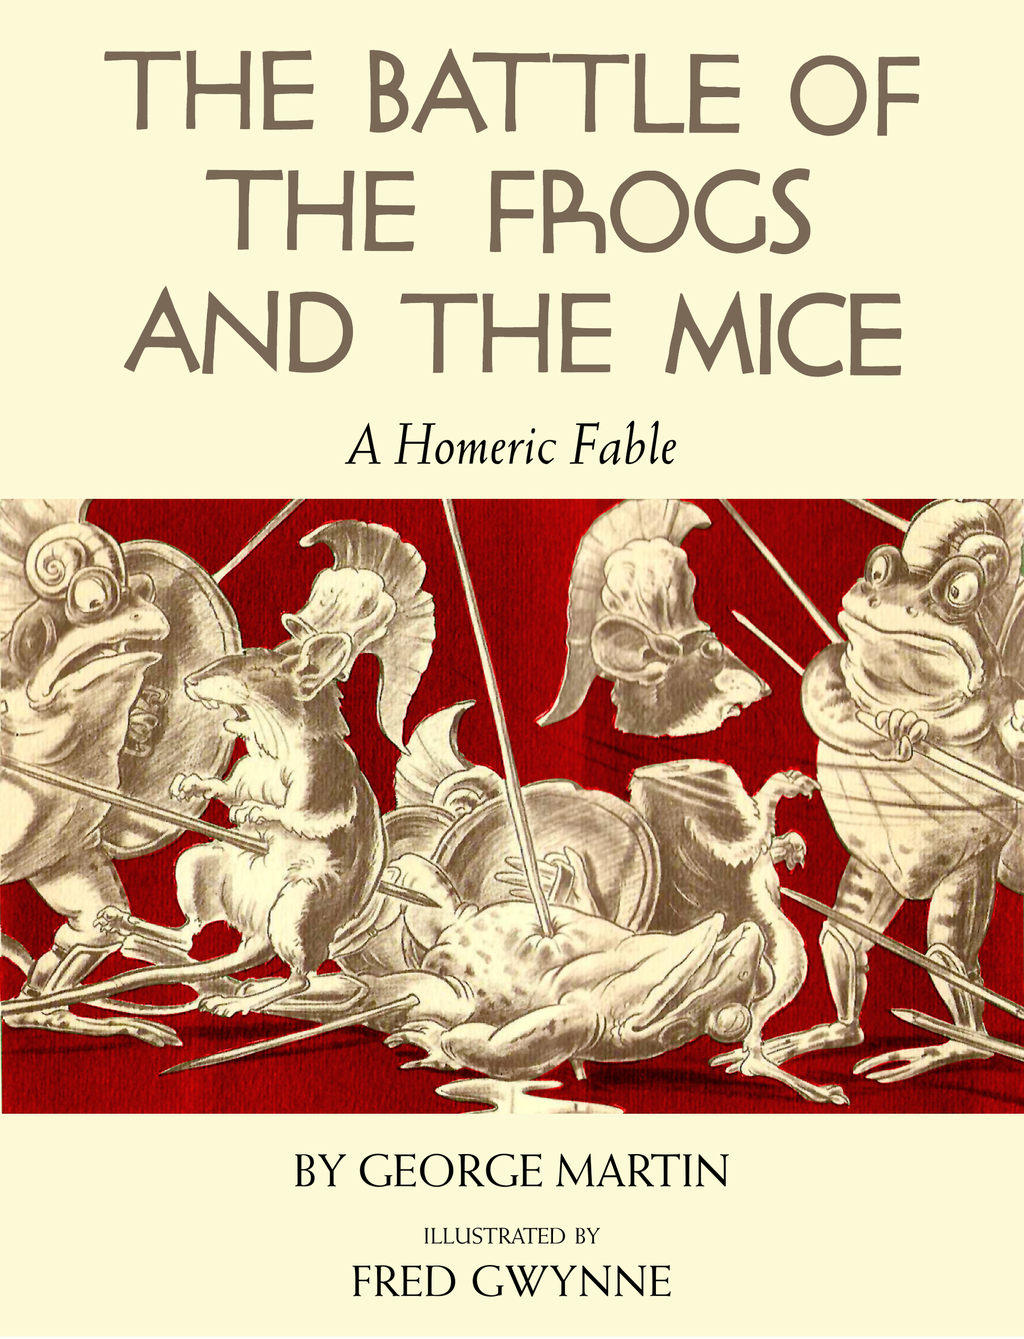 The Battle of the Frogs and the Mice A Homeric Fable